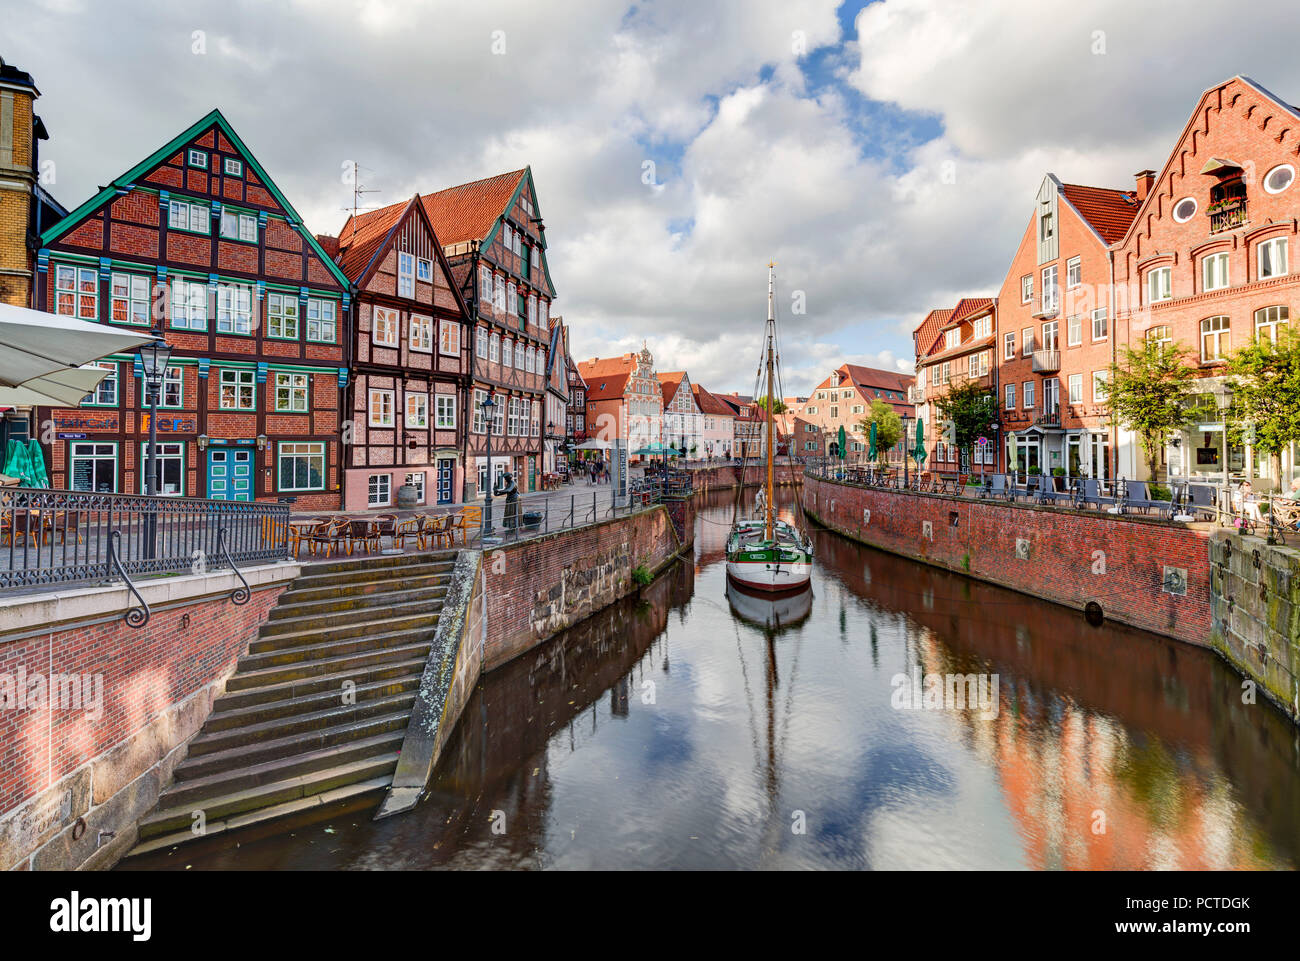 Hanse harbour, half-timbered houses, Stade, Altes Land, Niederelbe, Lower Saxony, Northern Germany, Germany, Europe - Stock Image